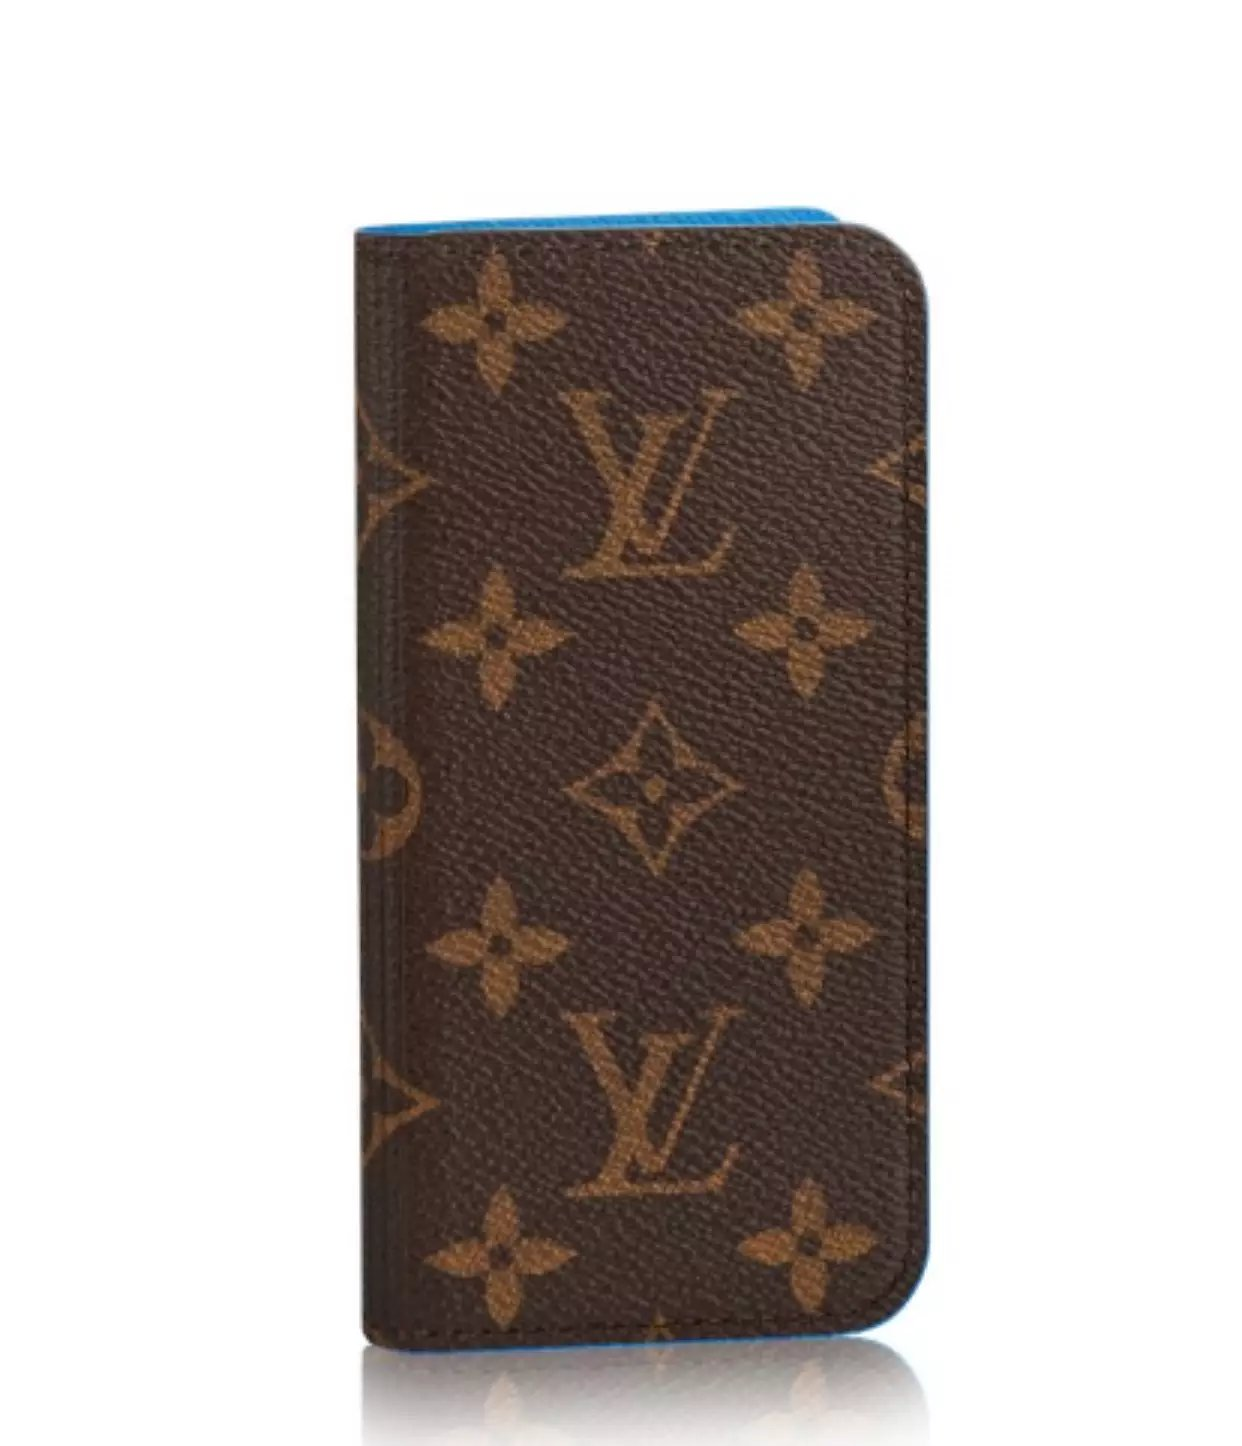 handyhüllen für iphone iphone handyhülle Louis Vuitton iphone7 Plus hülle handyhüllen für iphone 7 Plus 7lber gestalten foto cover handy billige iphone hüllen gute handyhüllen iphone 7 Plus tasche für gürtel iphone 7 Plus ledertasche exklusiv